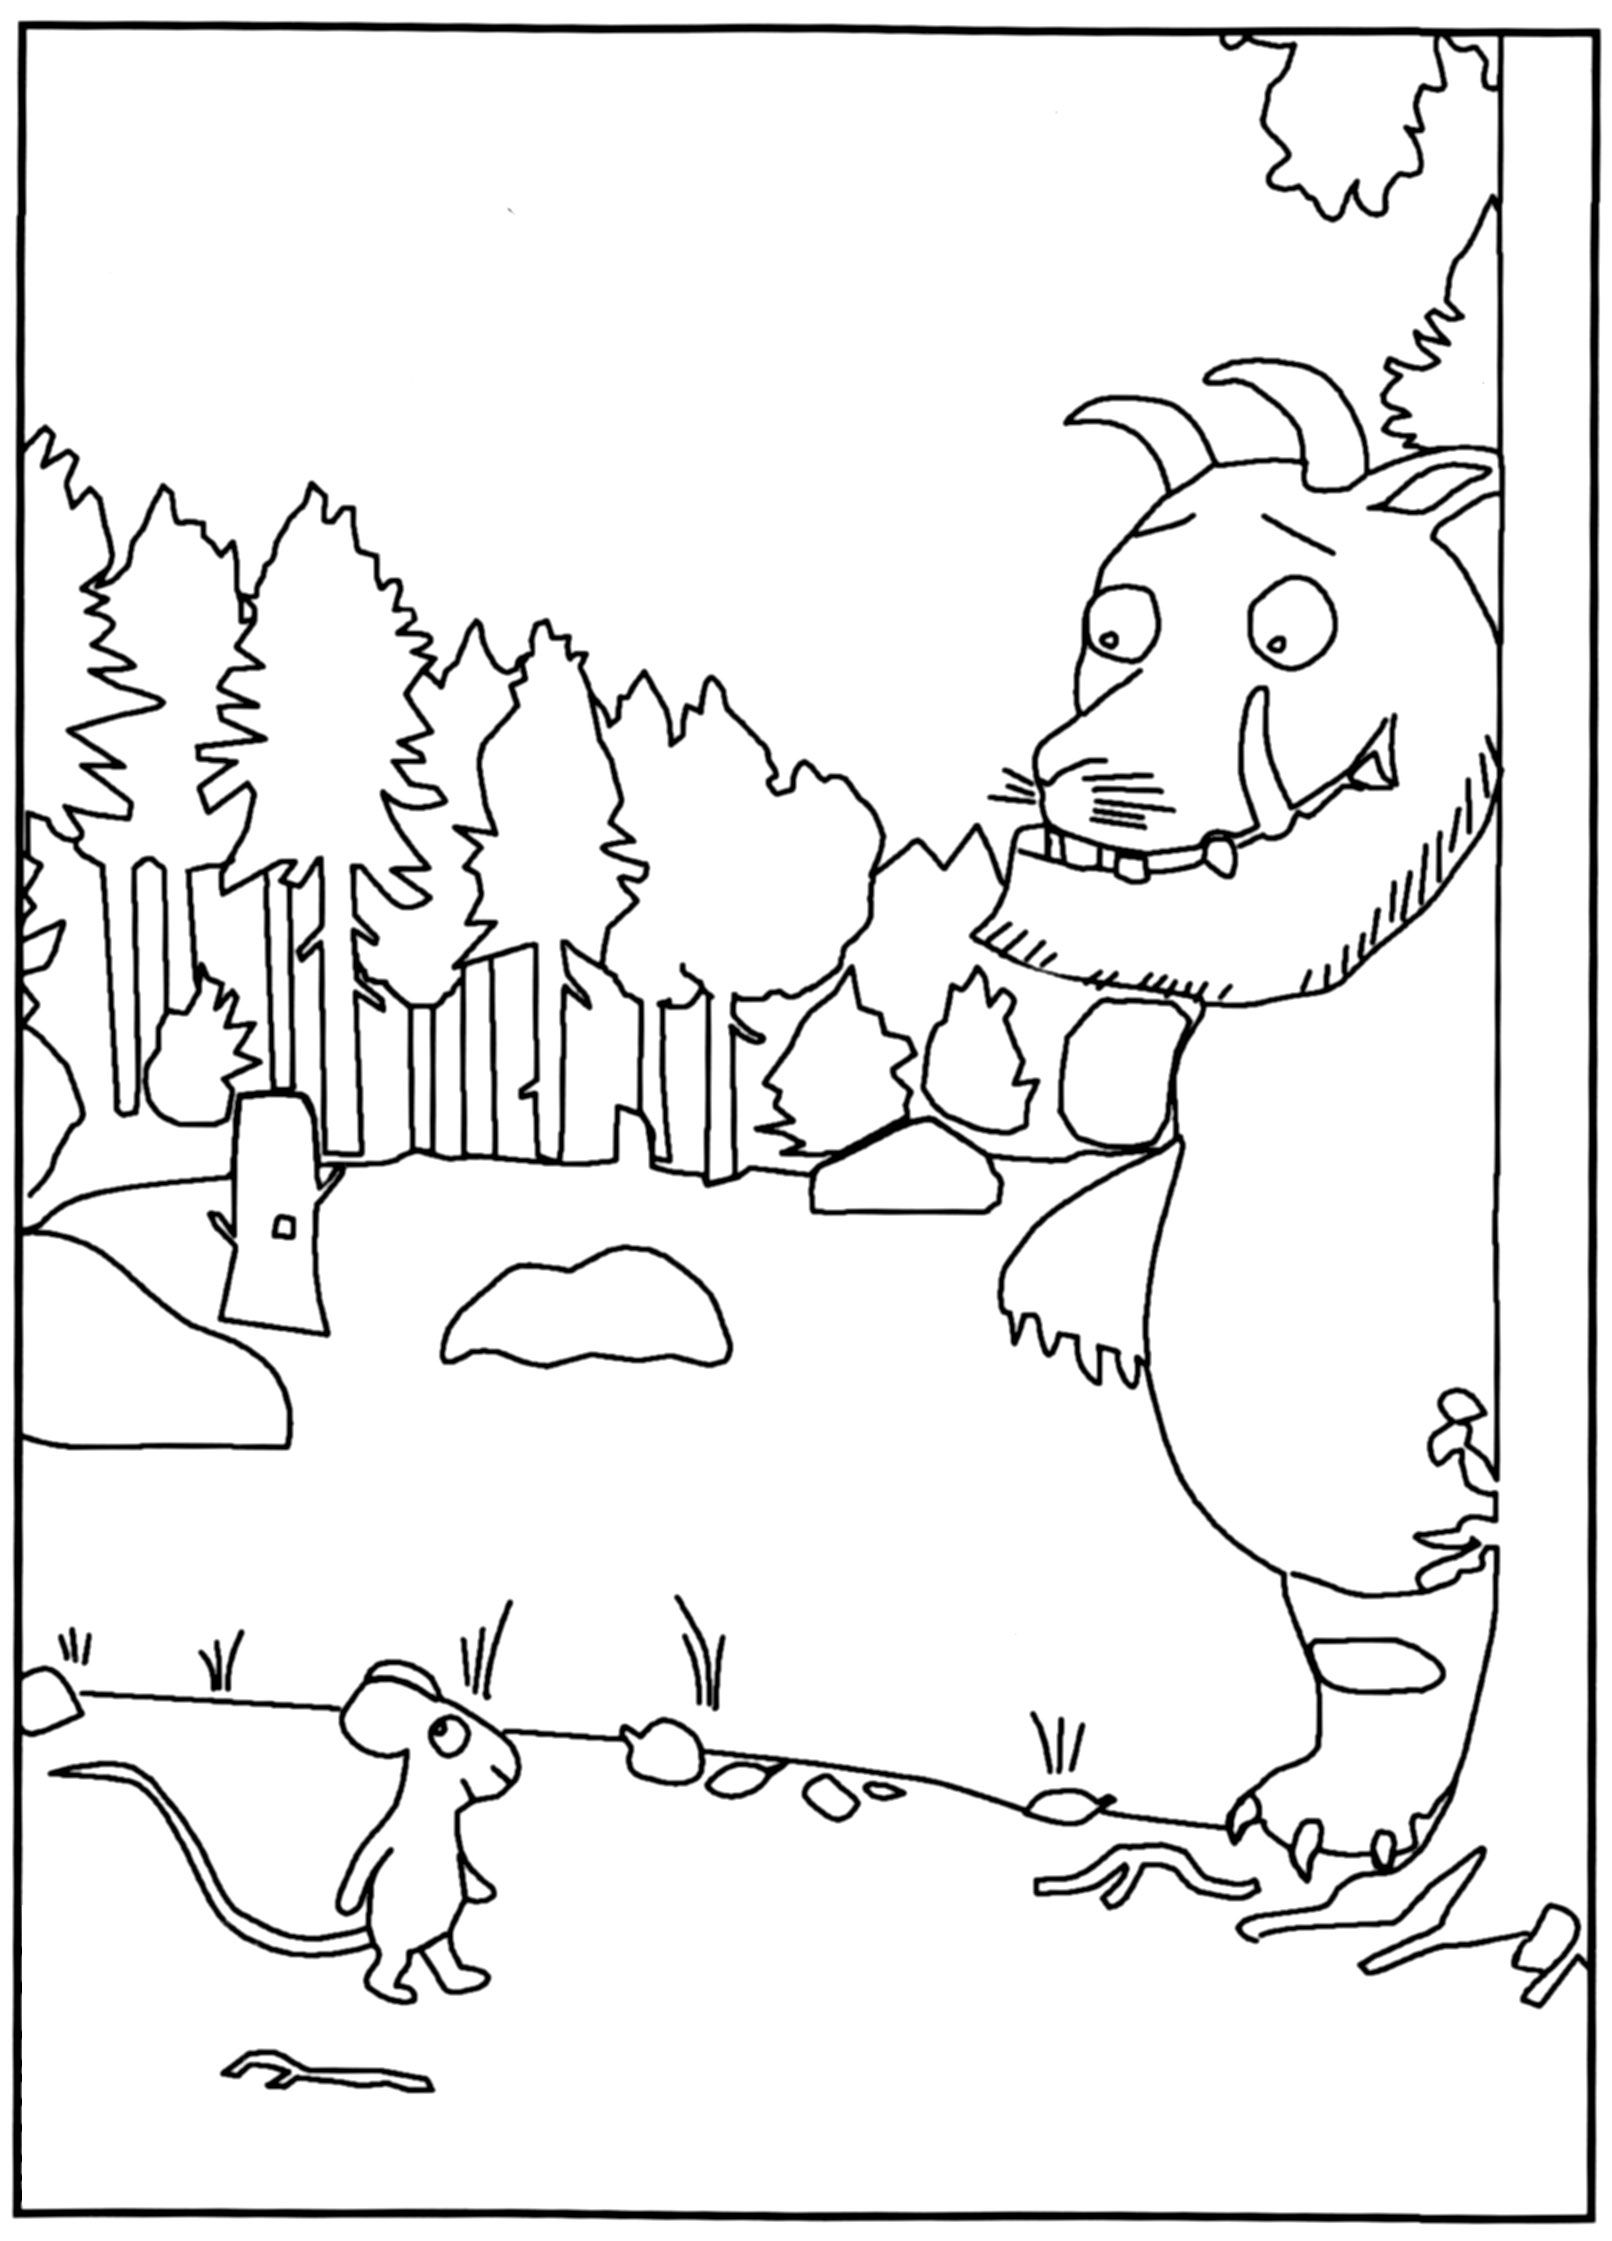 The gruffalo colouring pages to print - Gruffalo Colouring Page